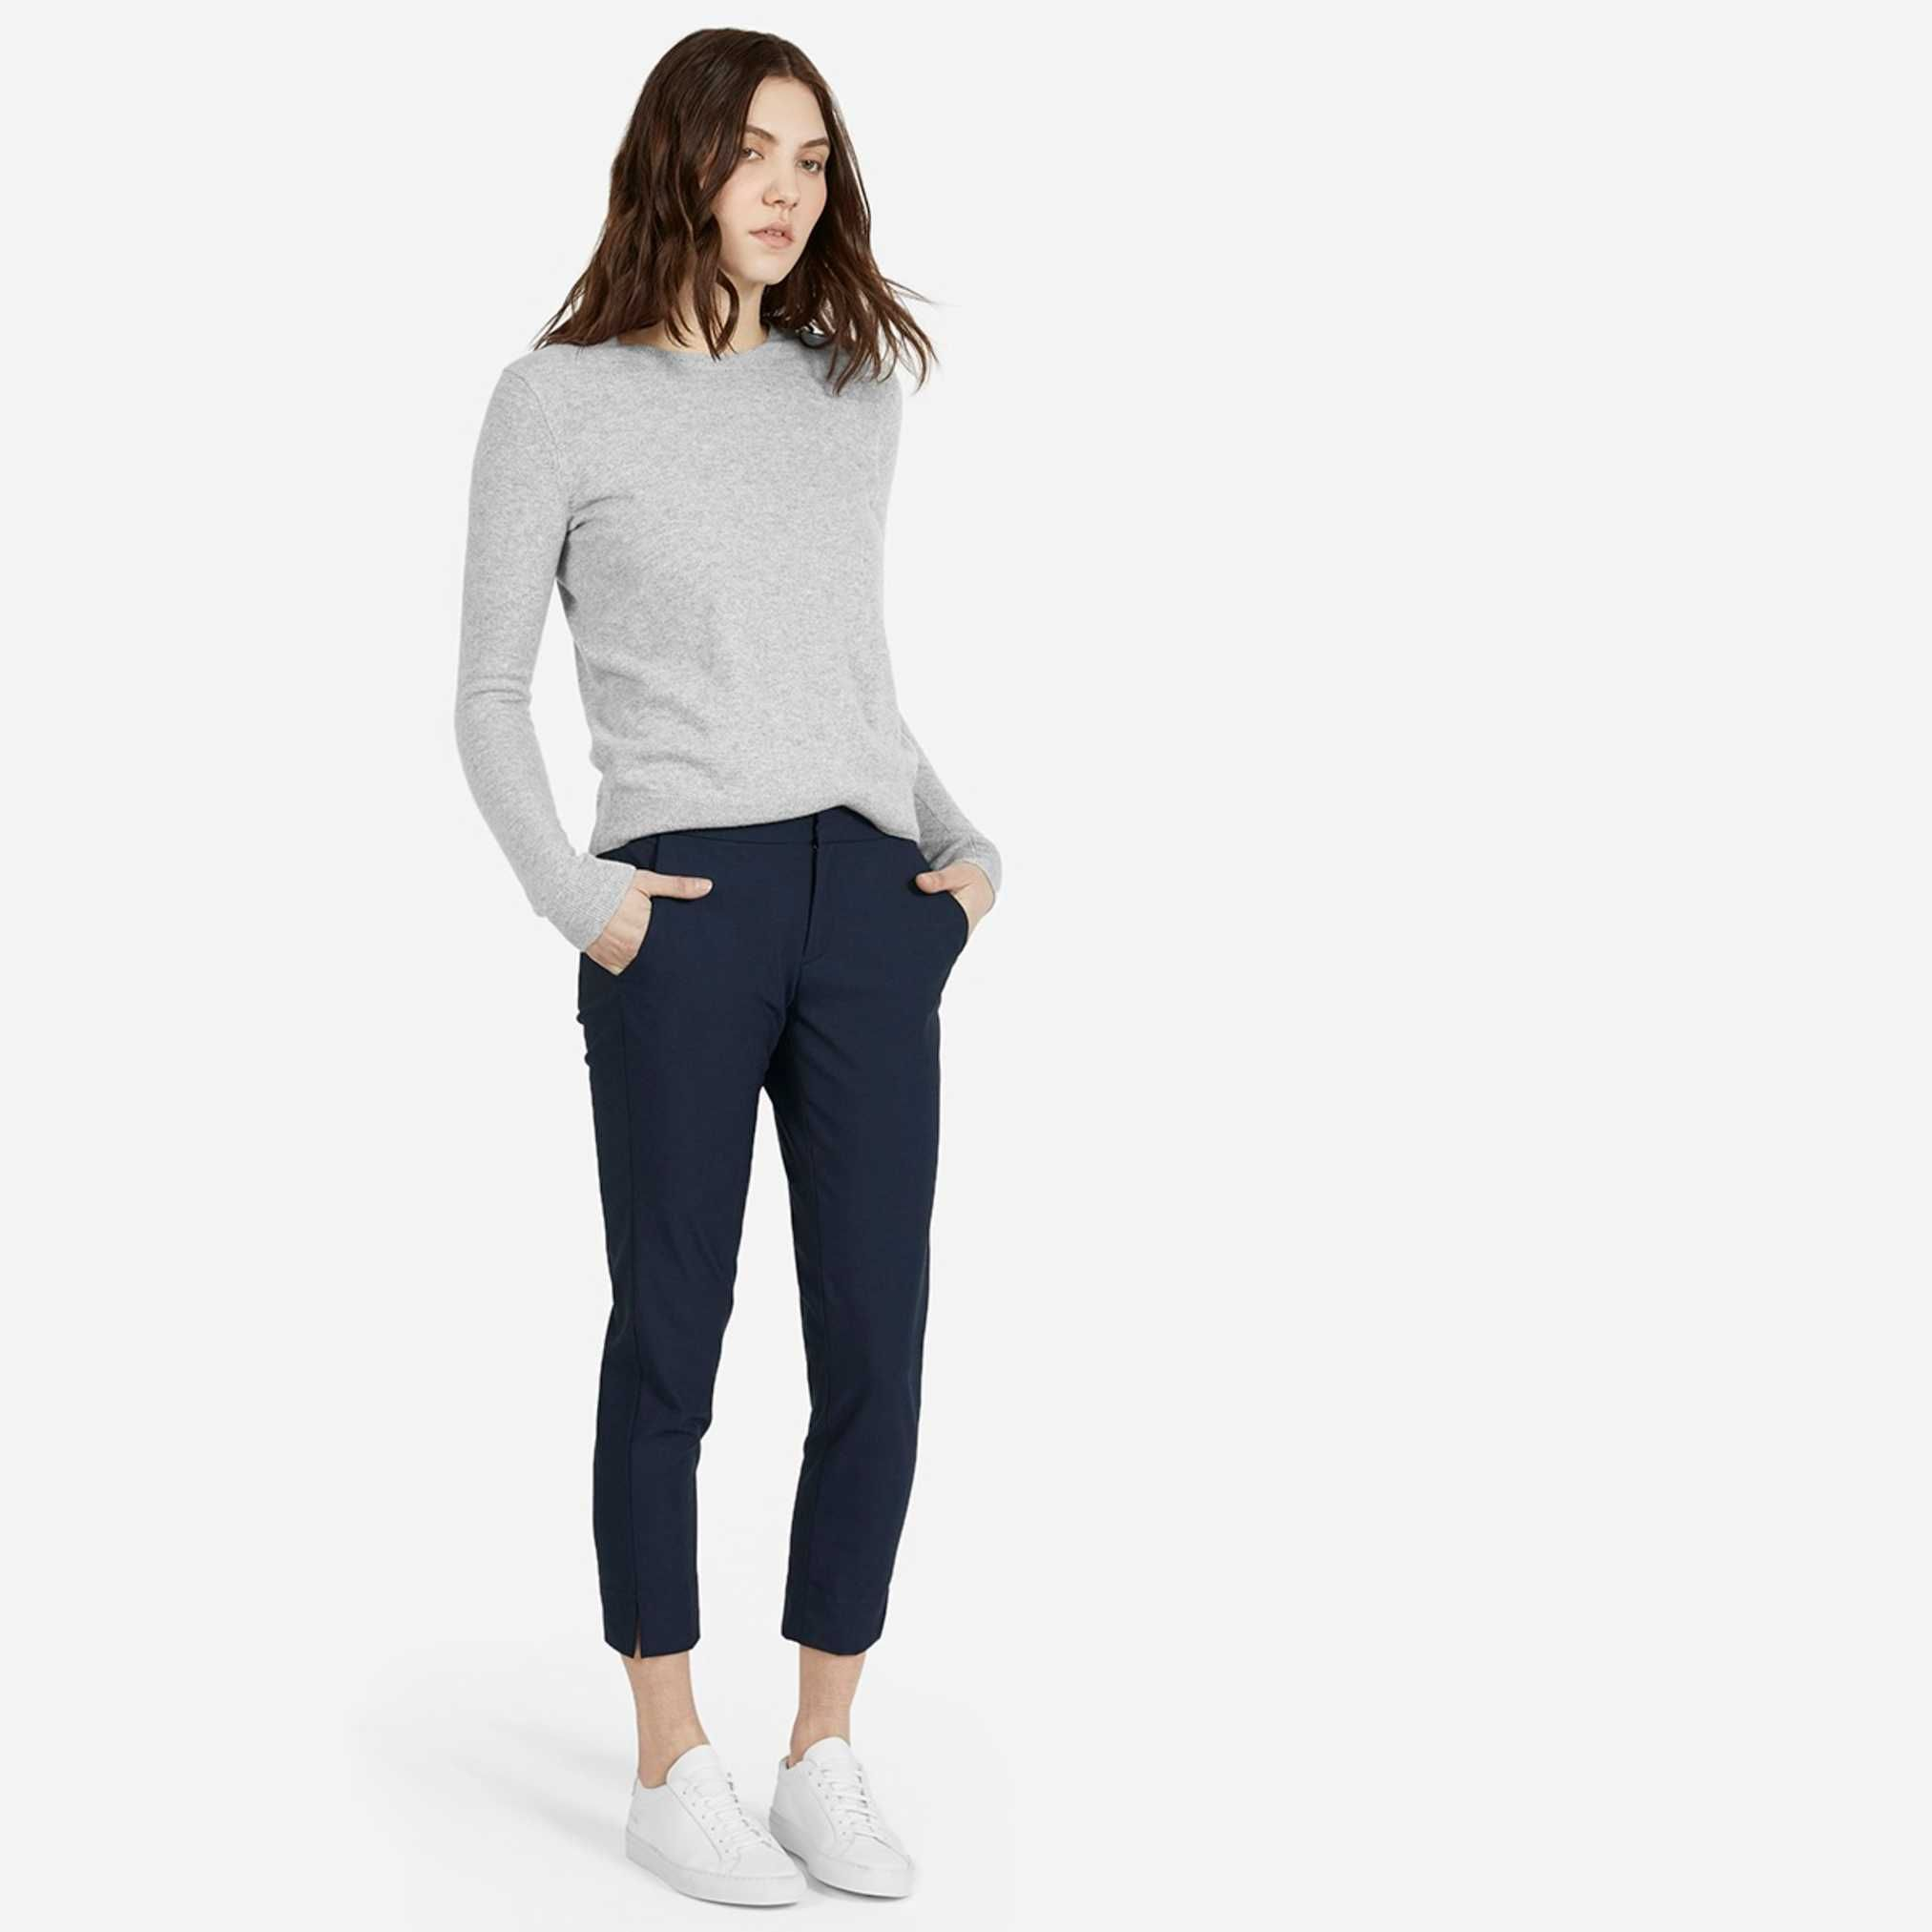 Everlane Is Currently Letting Shoppers Choose Their Own Price. This  post-Christmas sale poses a moral dilemma. 44b250e94